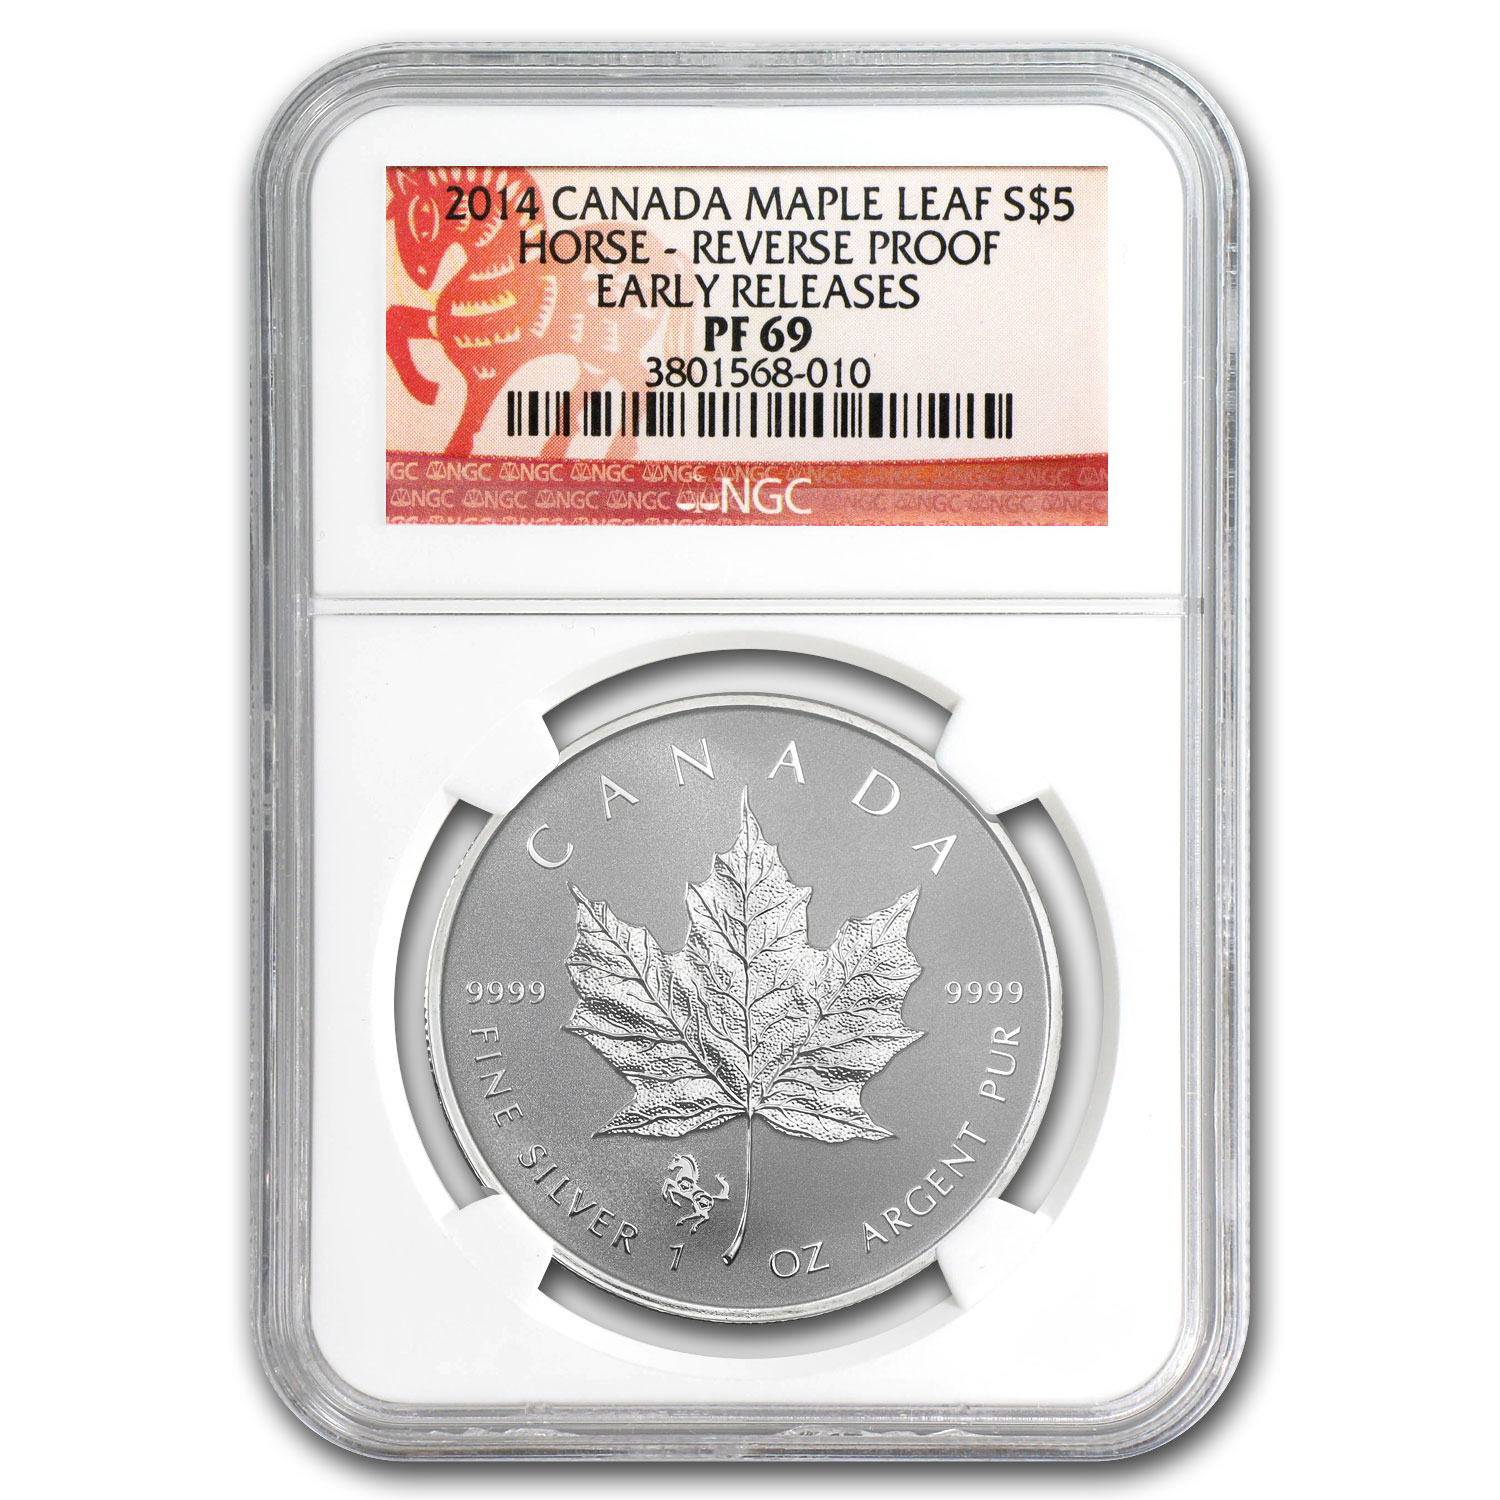 2014 Canada 1 oz Silver Maple Leaf Horse Privy PF-69 NGC ER